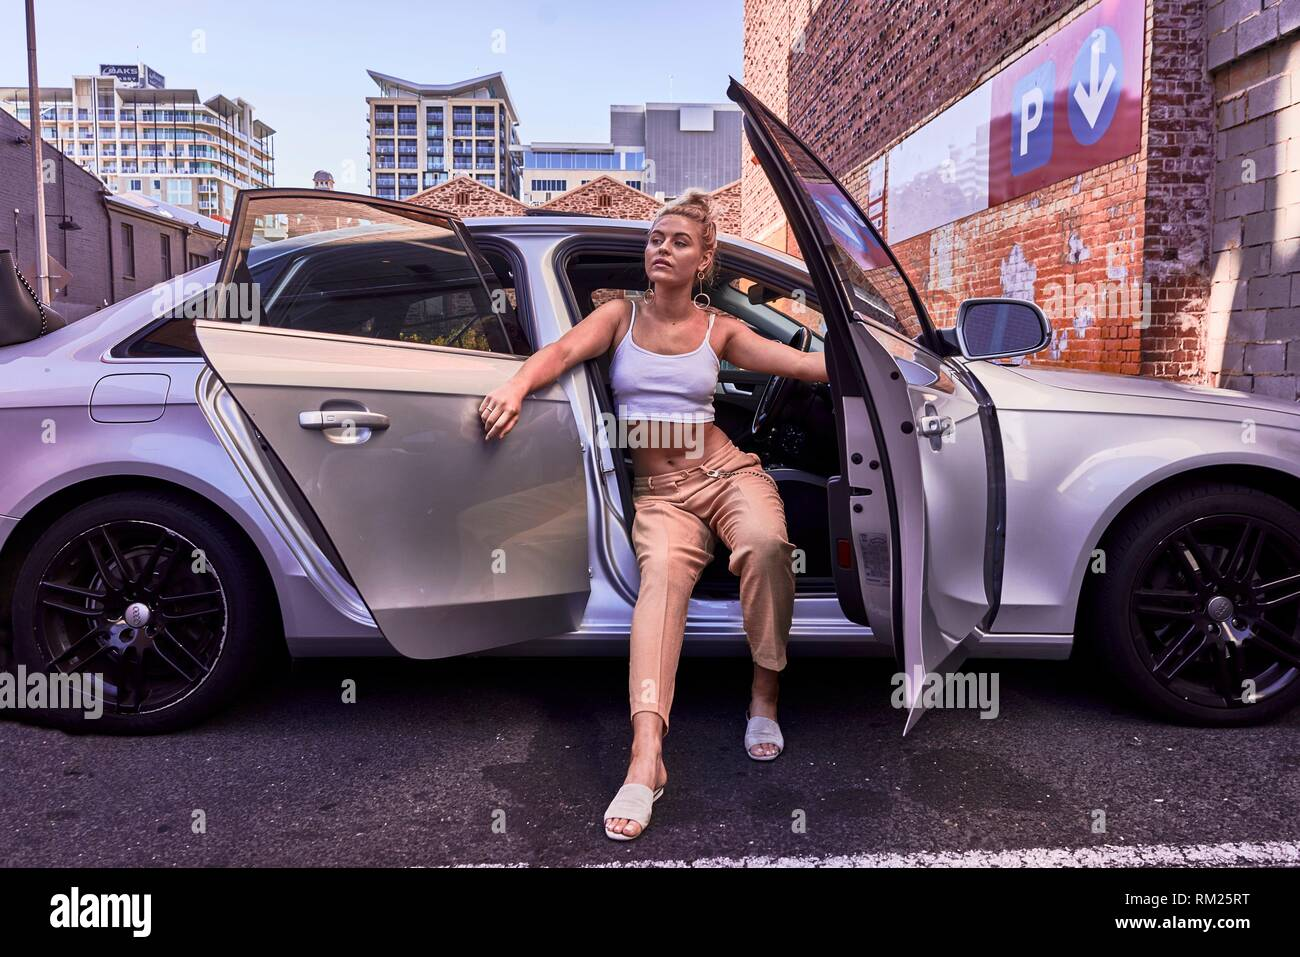 Australia, Adelaide, women fashion blogger and actress Sarah Jeavons posing in parked car - Stock Image